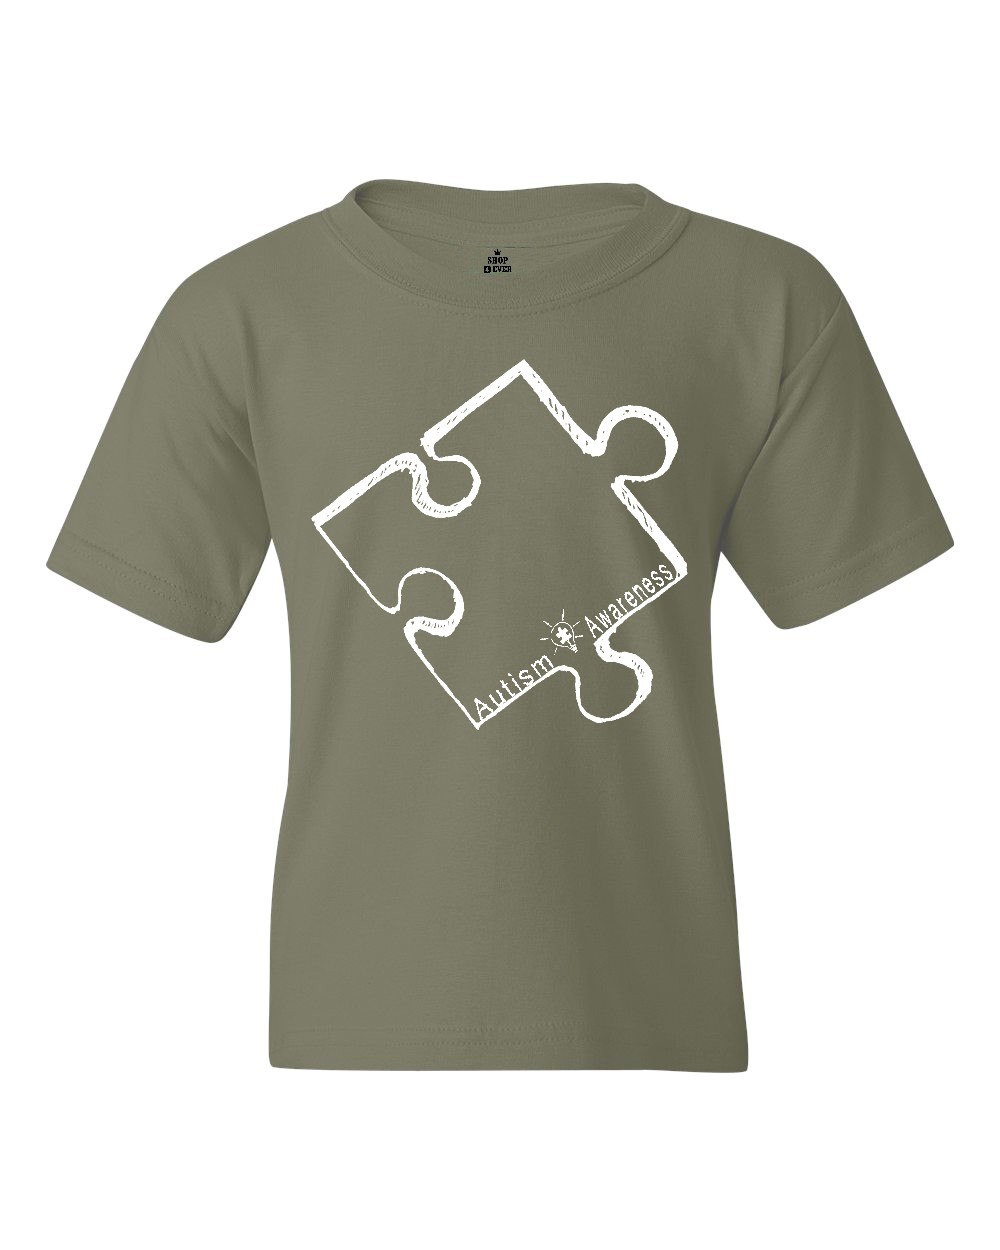 Shop4Ever Youth White Puzzle Piece Autism Awareness Graphic Youth T-Shirt